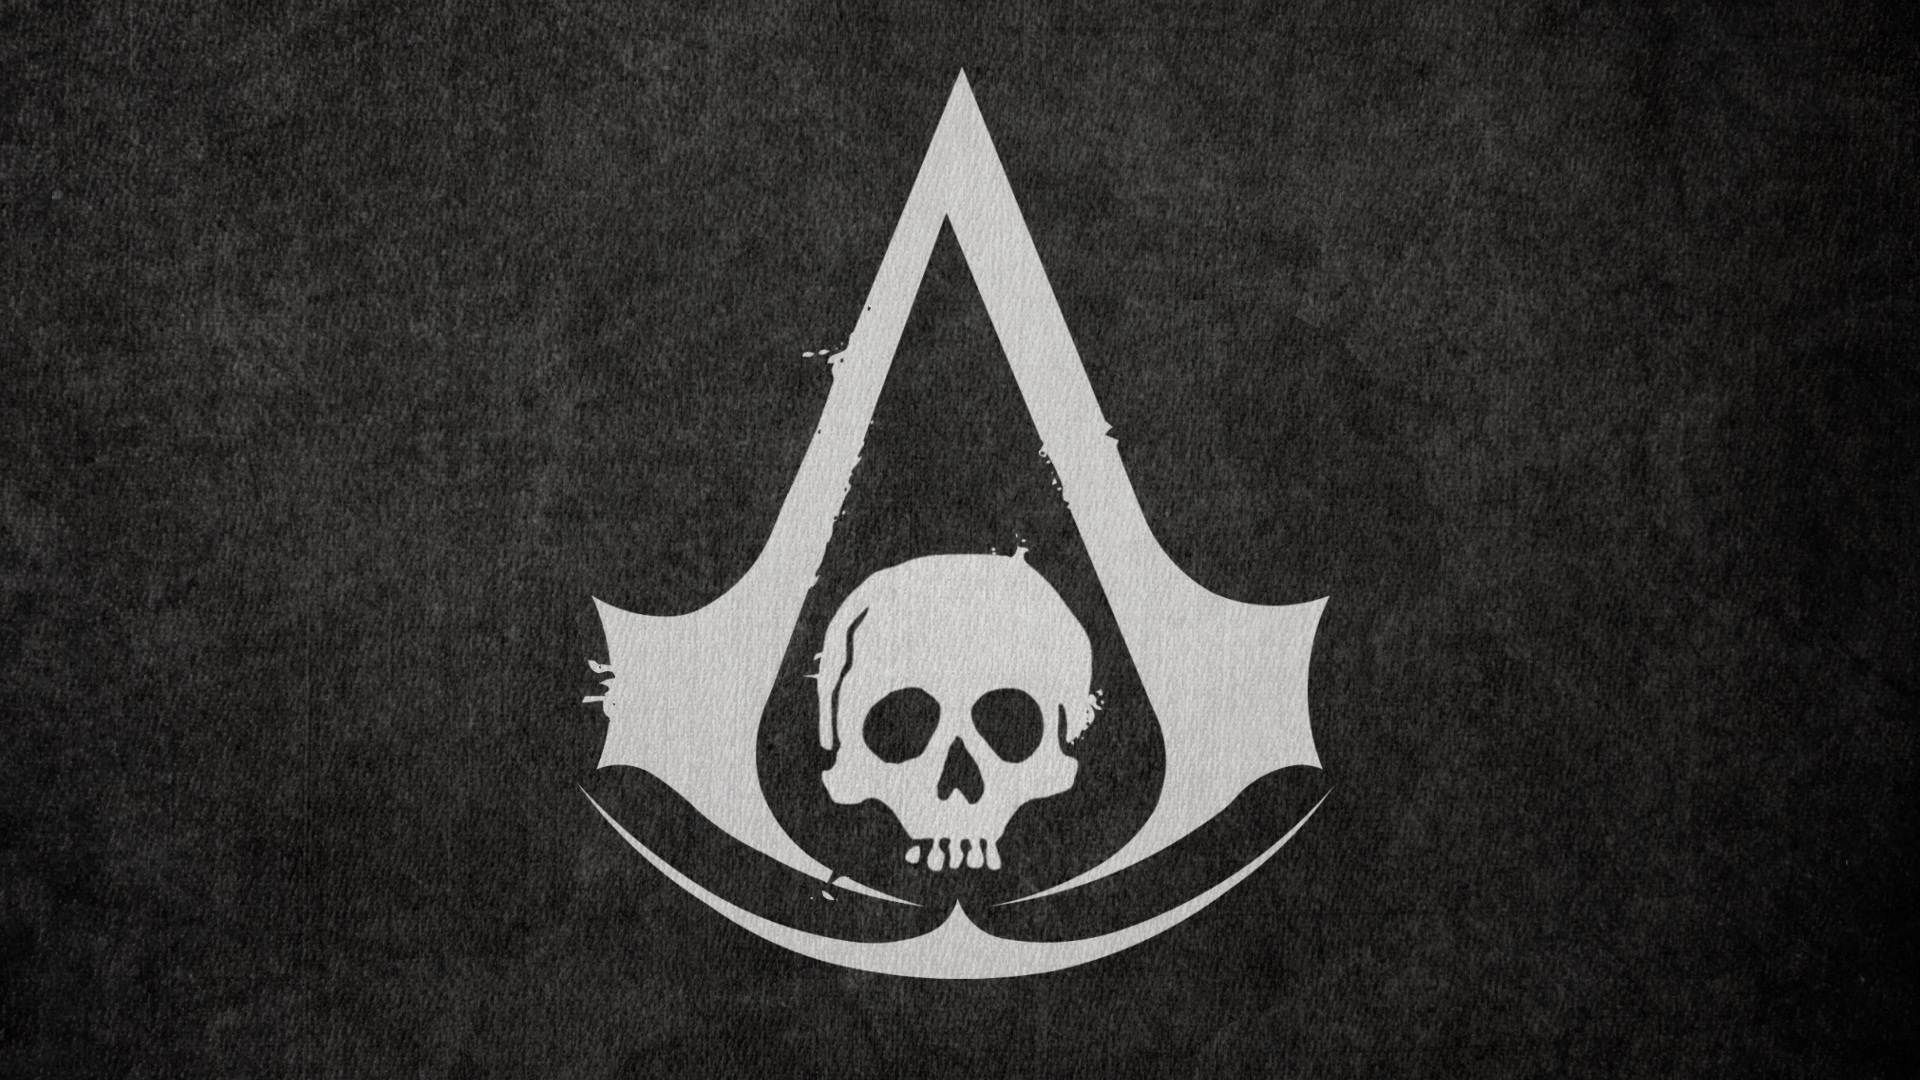 AssassinsCreed4BlackFlagWallpaperLogo.jpg (1920×1080